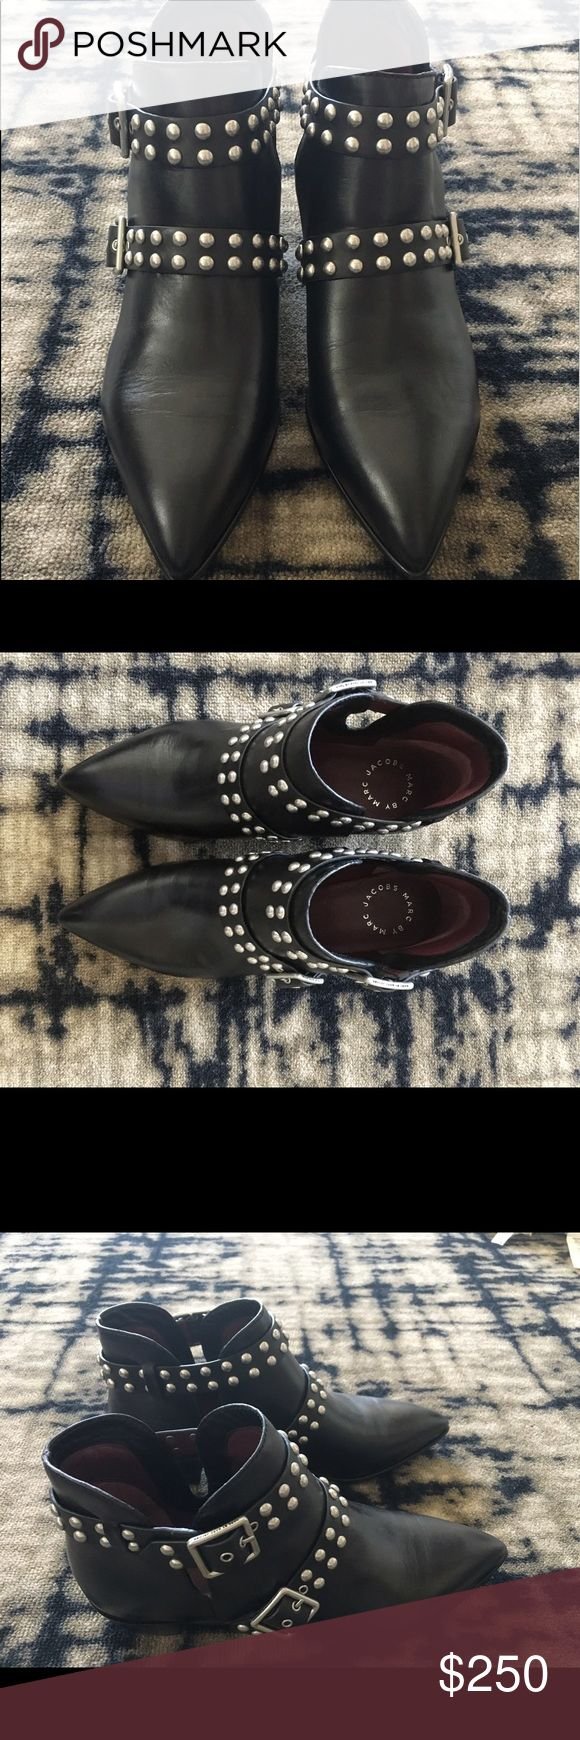 Marc Jacobs studded 2 strap ankle boot Never worn, super cool studded ankle boots. Marc Jacobs Shoes Ankle Boots & Booties